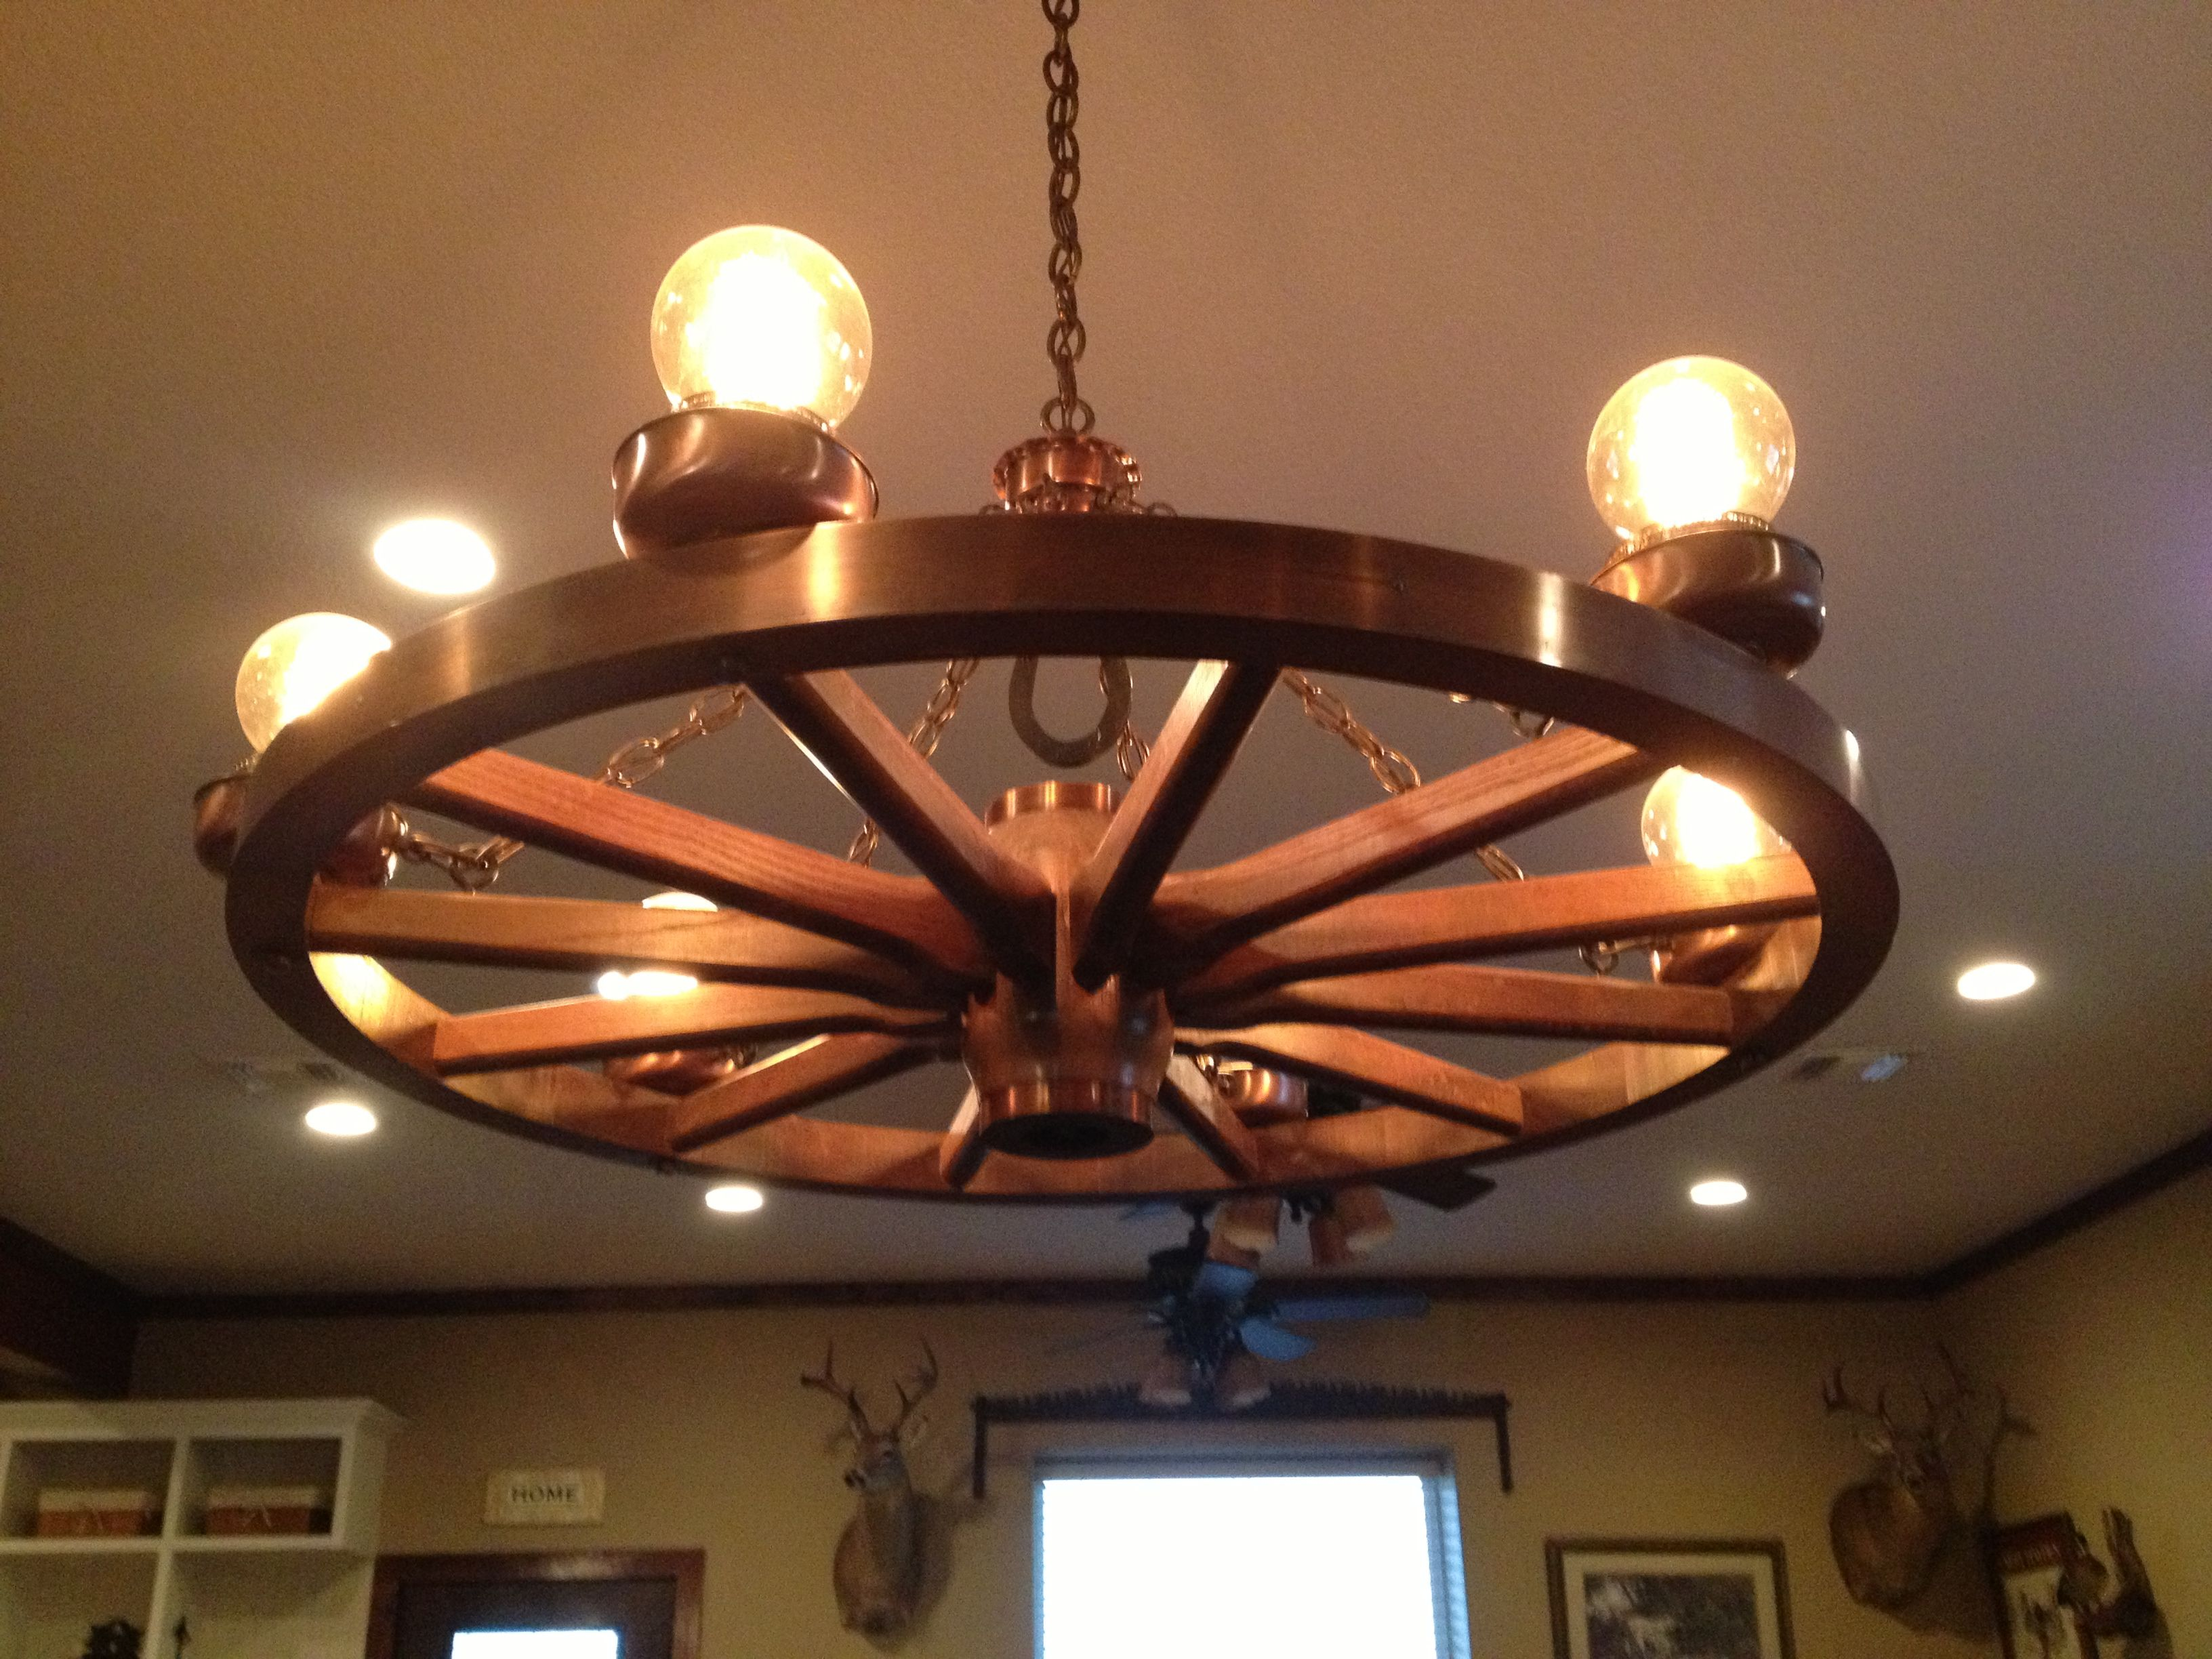 Wagon wheel chandelier with antique light bulbs  My